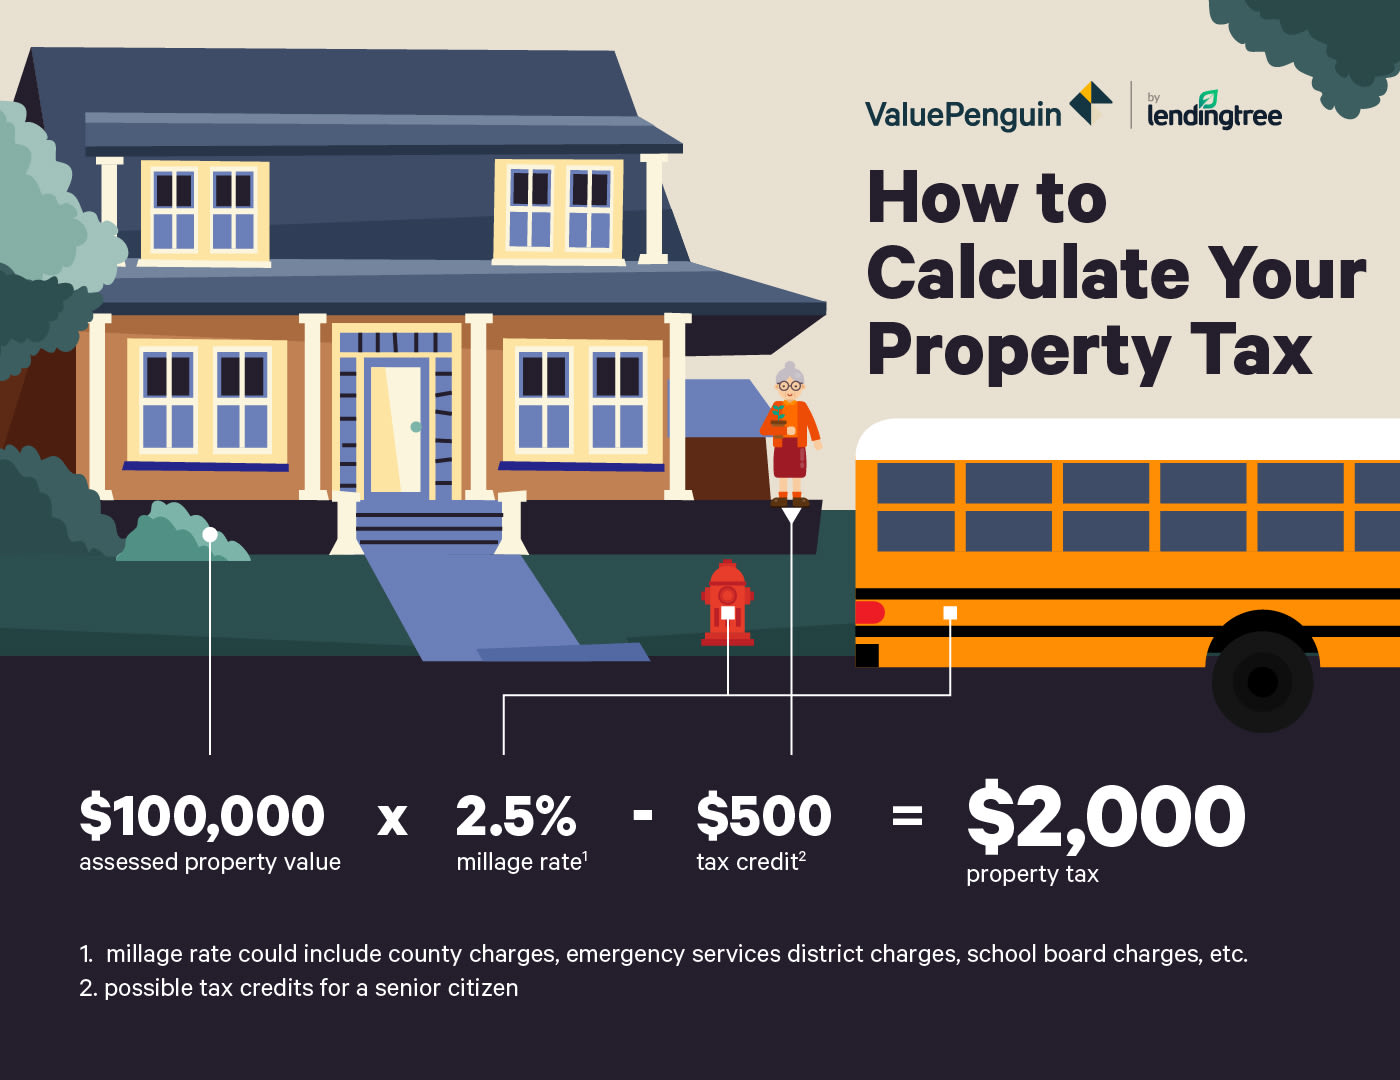 Where Have Property Taxes Increased the Most? - ValuePenguin